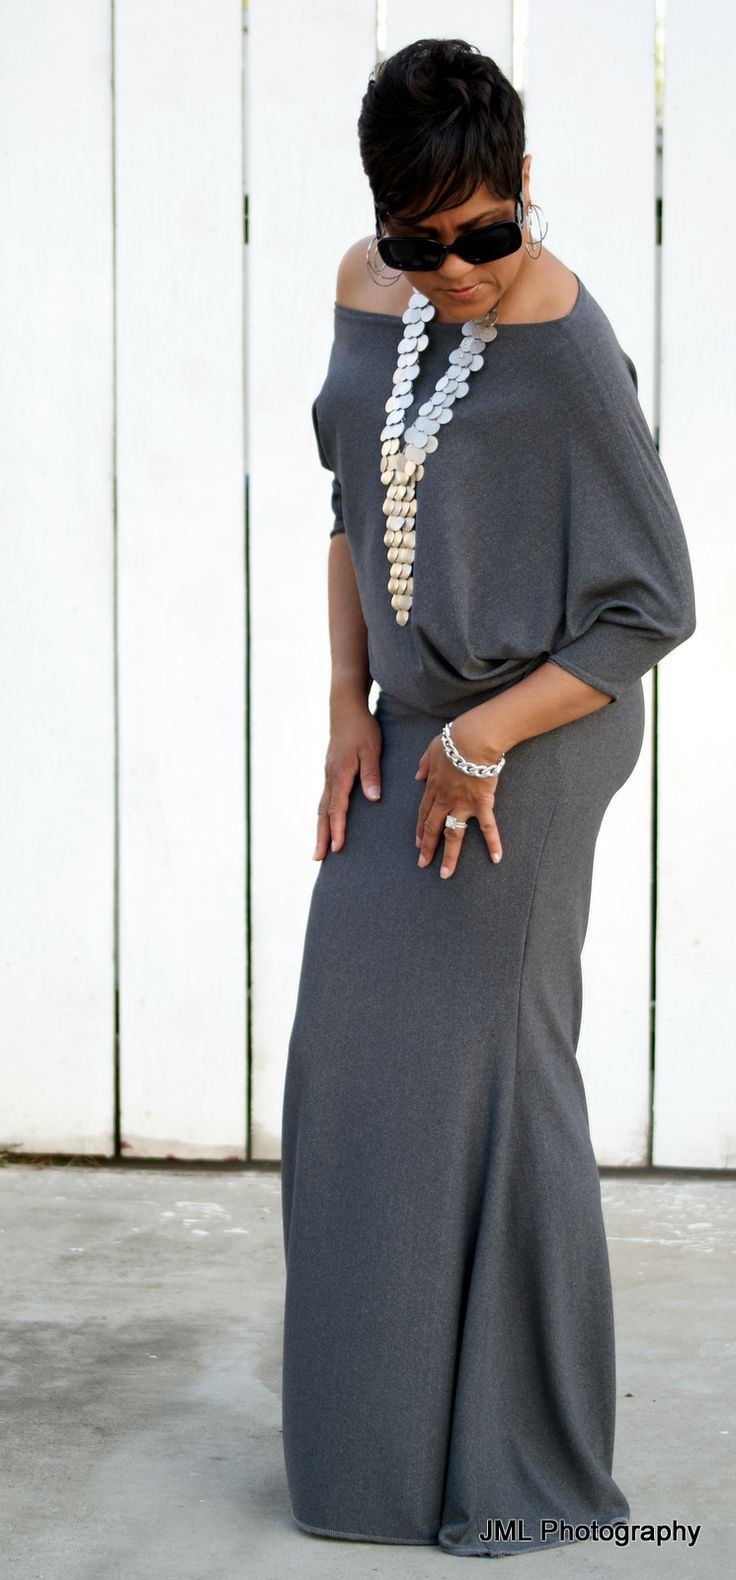 Dolman sleeve flare dress in grey but for spring!